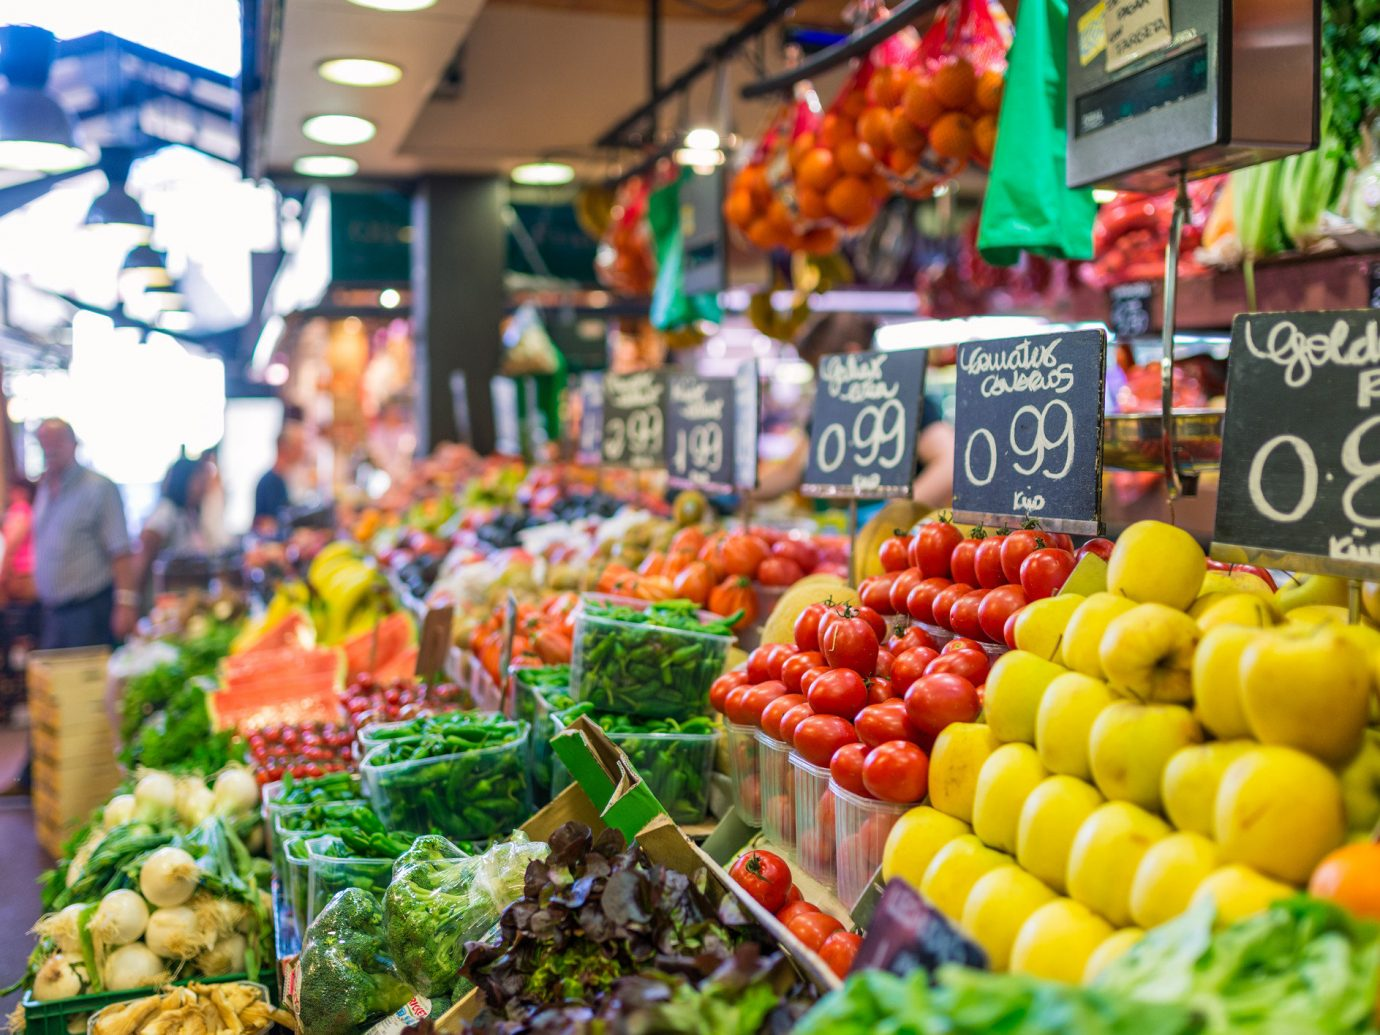 Food + Drink food marketplace fruit local food market supermarket City public space grocery store geographical feature greengrocer human settlement vendor vegetable scene produce whole food dish sense retail store fresh sale variety